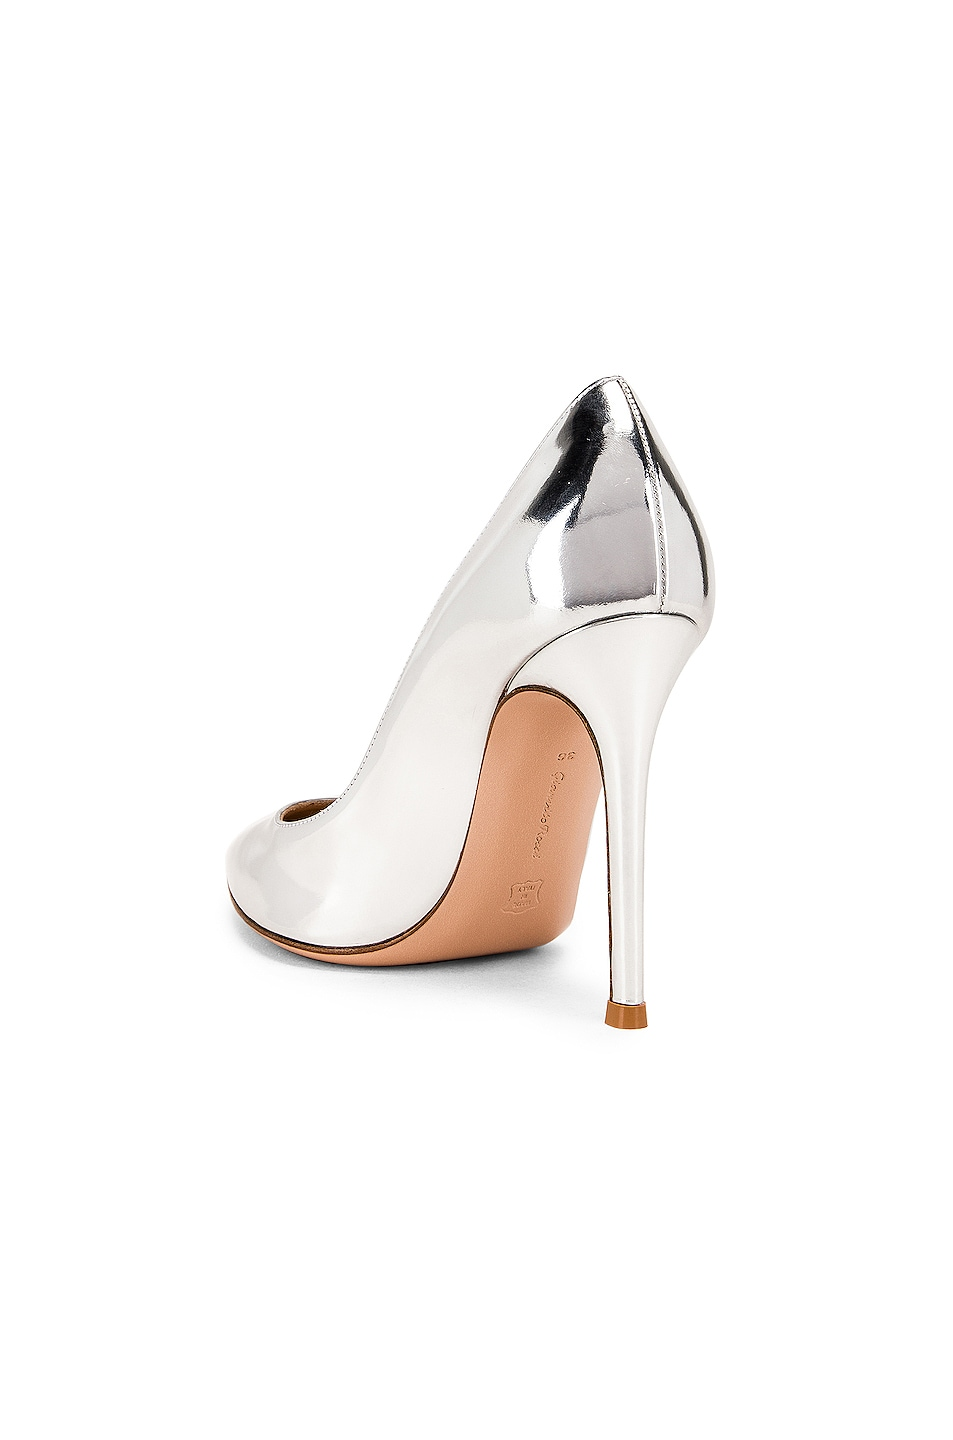 Image 3 of Gianvito Rossi Metal GIanvito Heels in Silver